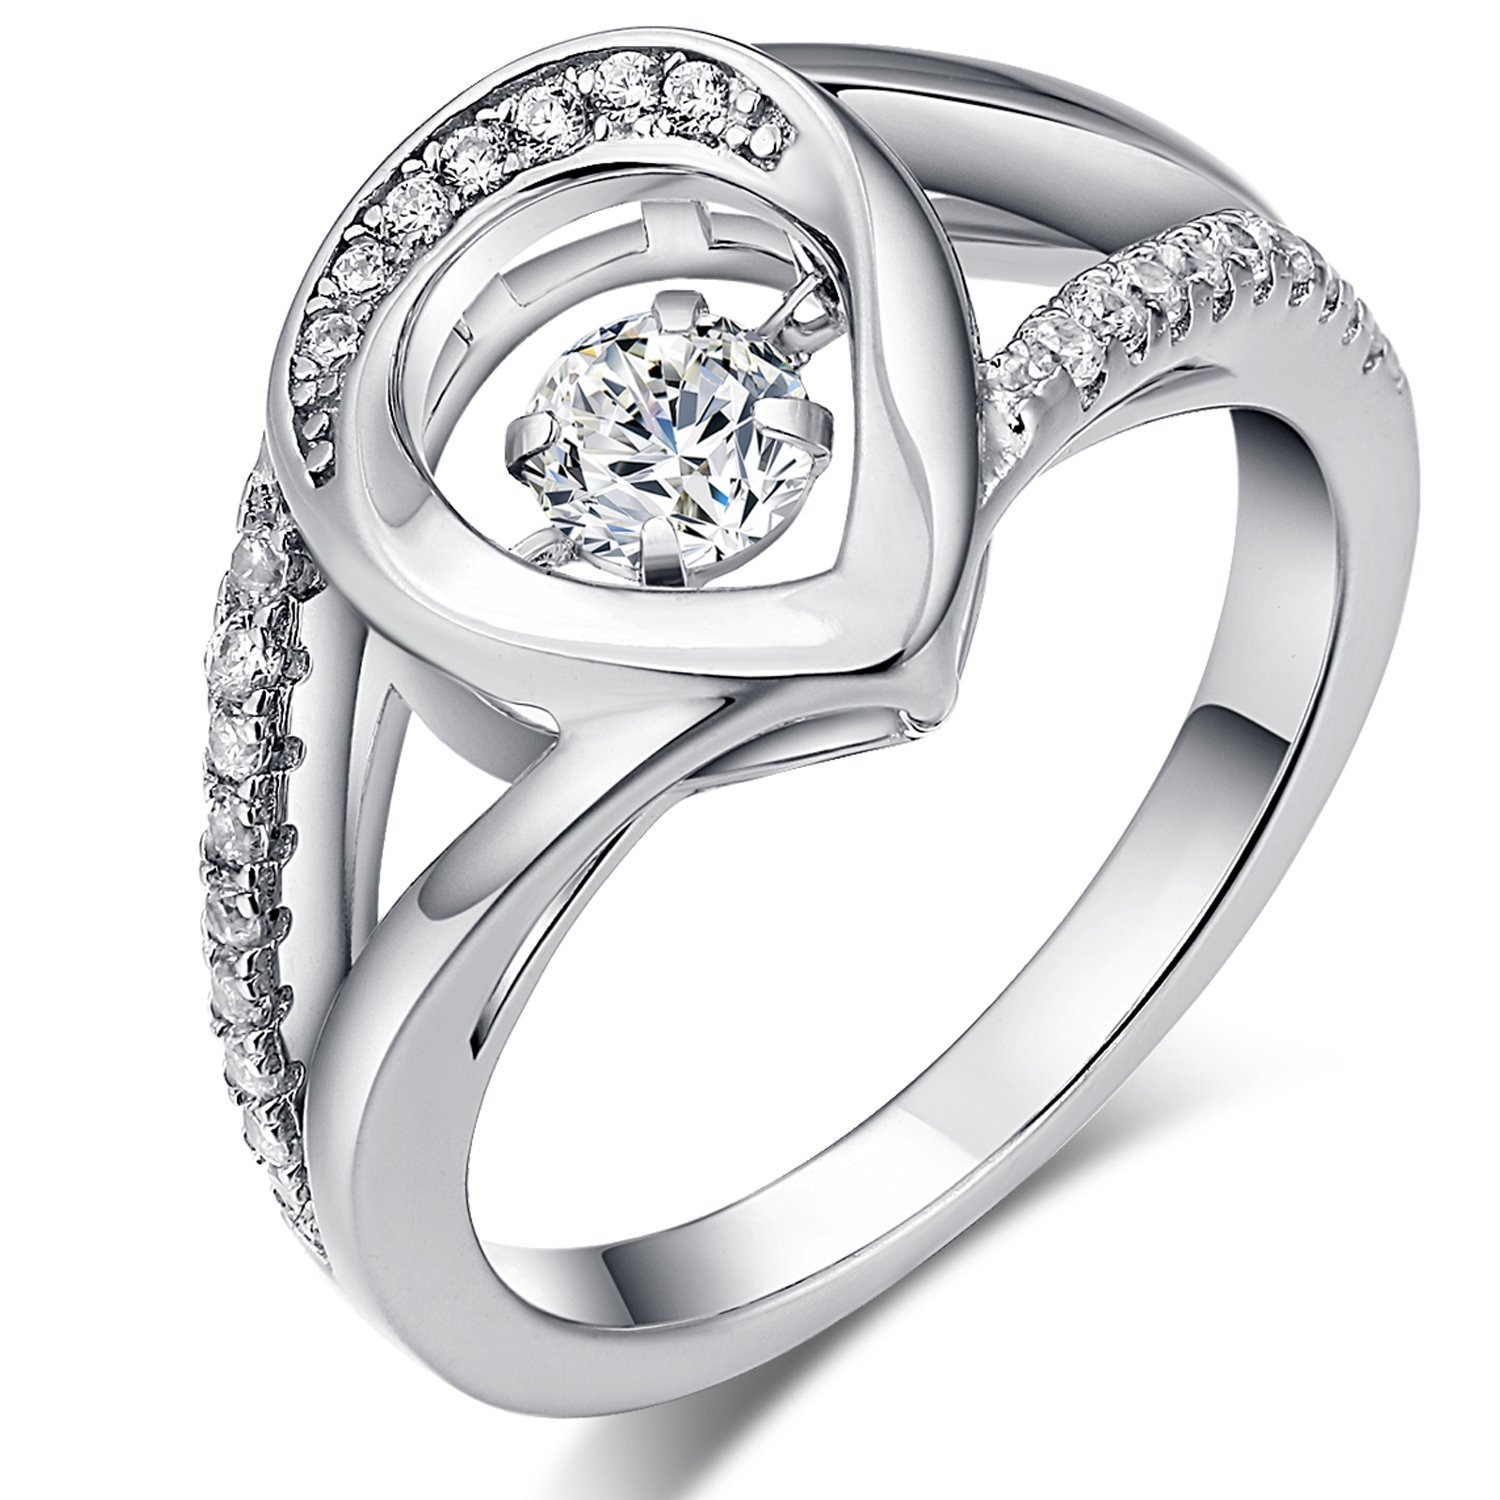 Slyq Jewelry Unique Design Hollow Gold//Silver Color Punk Women cubic zirconia engagement rings